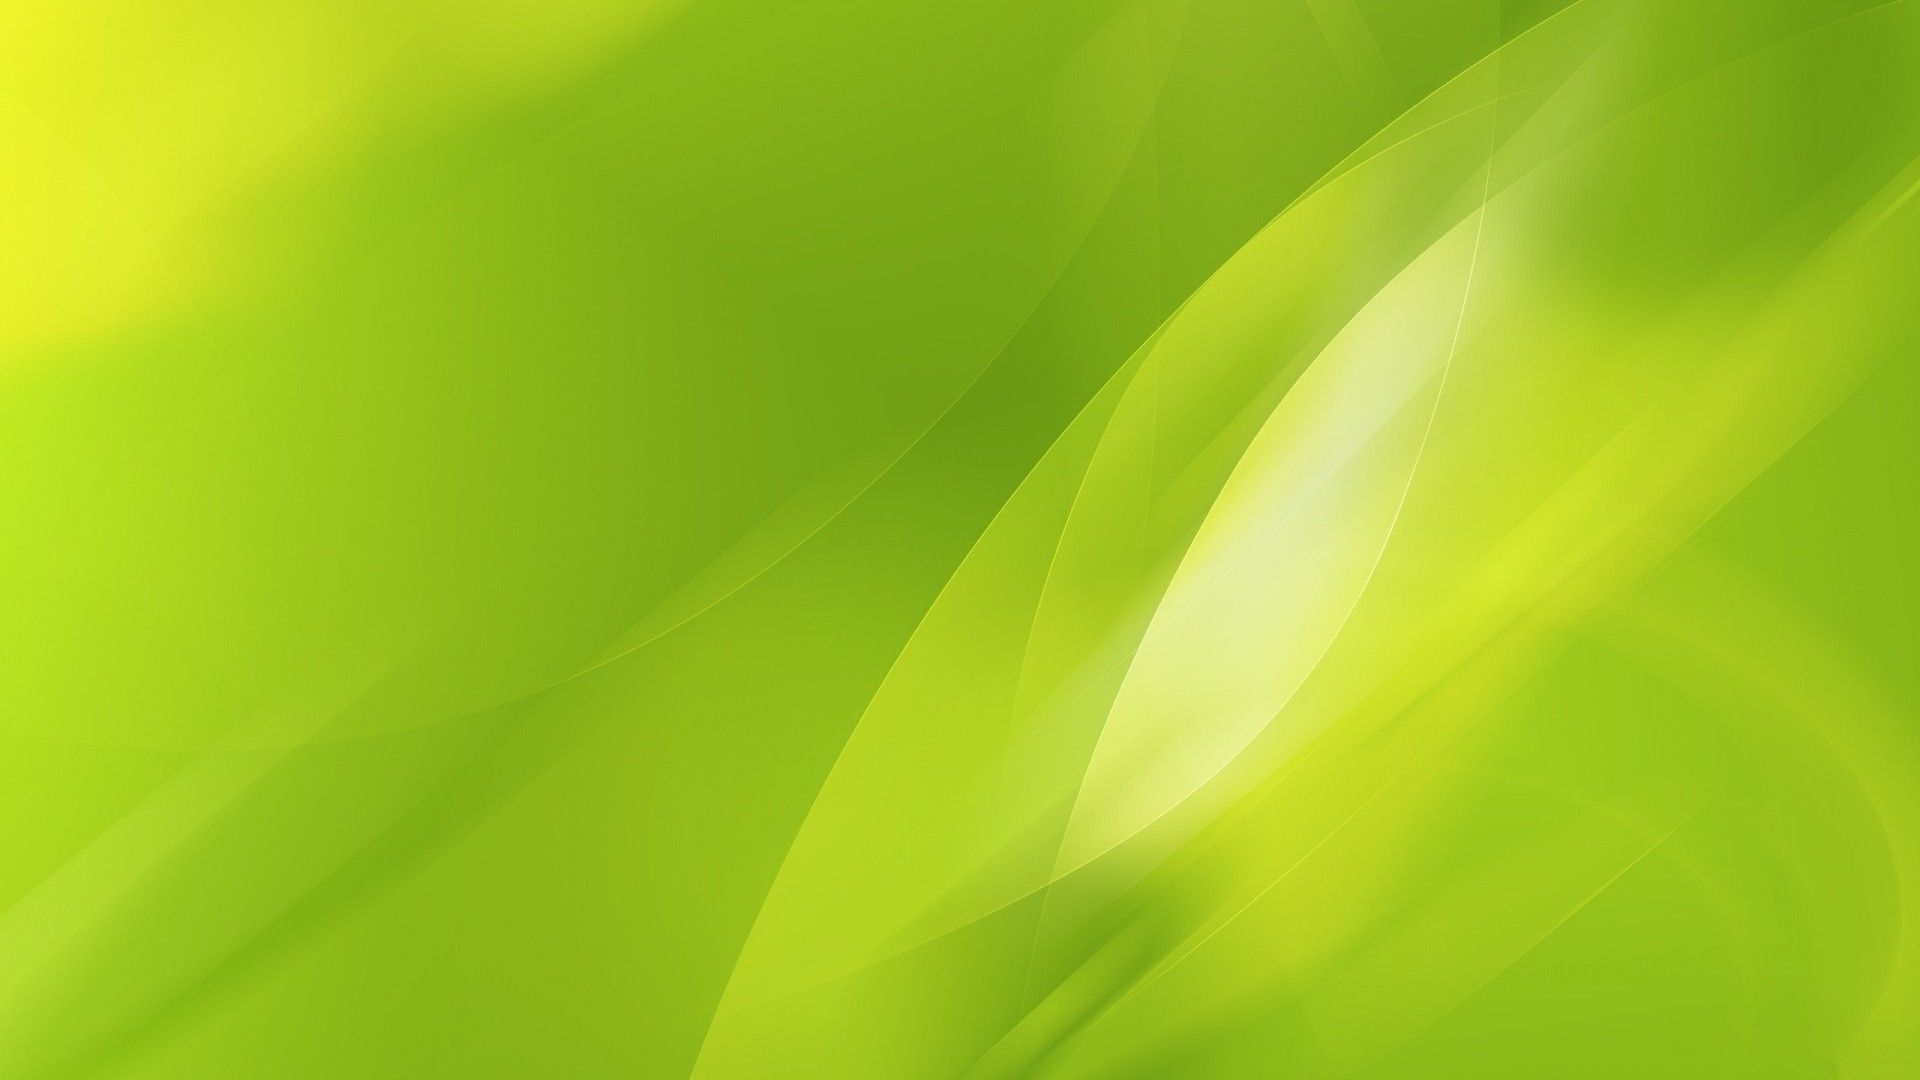 Lime Green Background